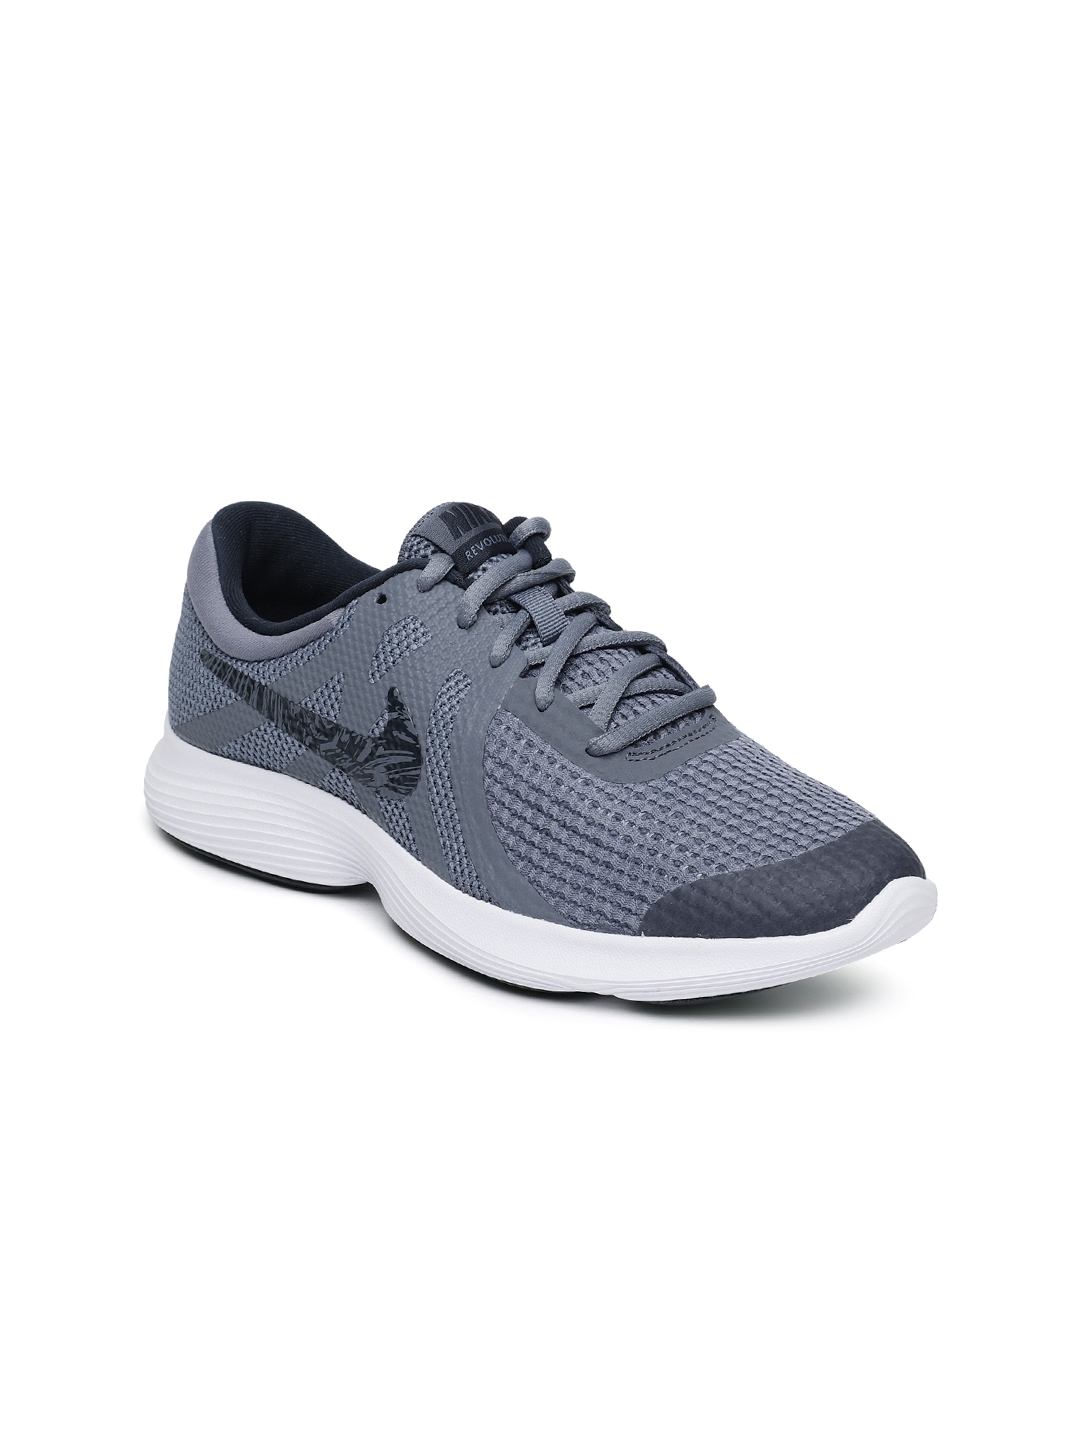 get cheap 70b94 4a196 Nike Boys Grey Revolution 4 (GS) Running Shoes